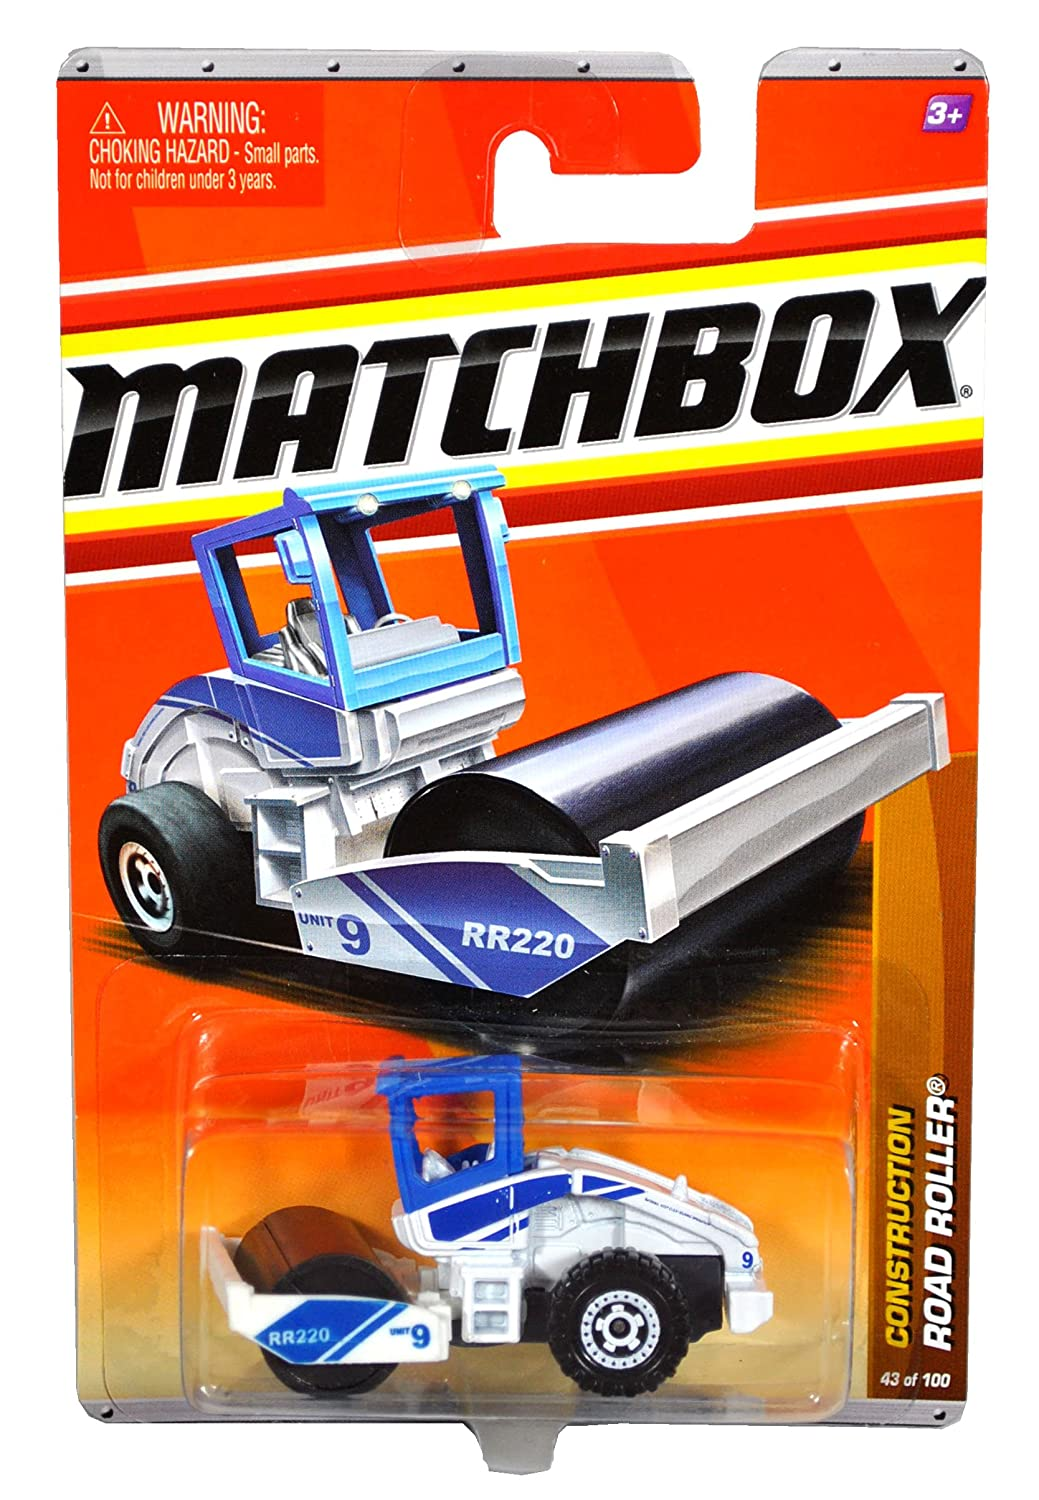 Mattel Year 2010 Matchbox MBX Construction Series 1:64 Scale Die Cast Car 43 - White and Blue Color Unit 9 ROAD ROLLER by Matchbox